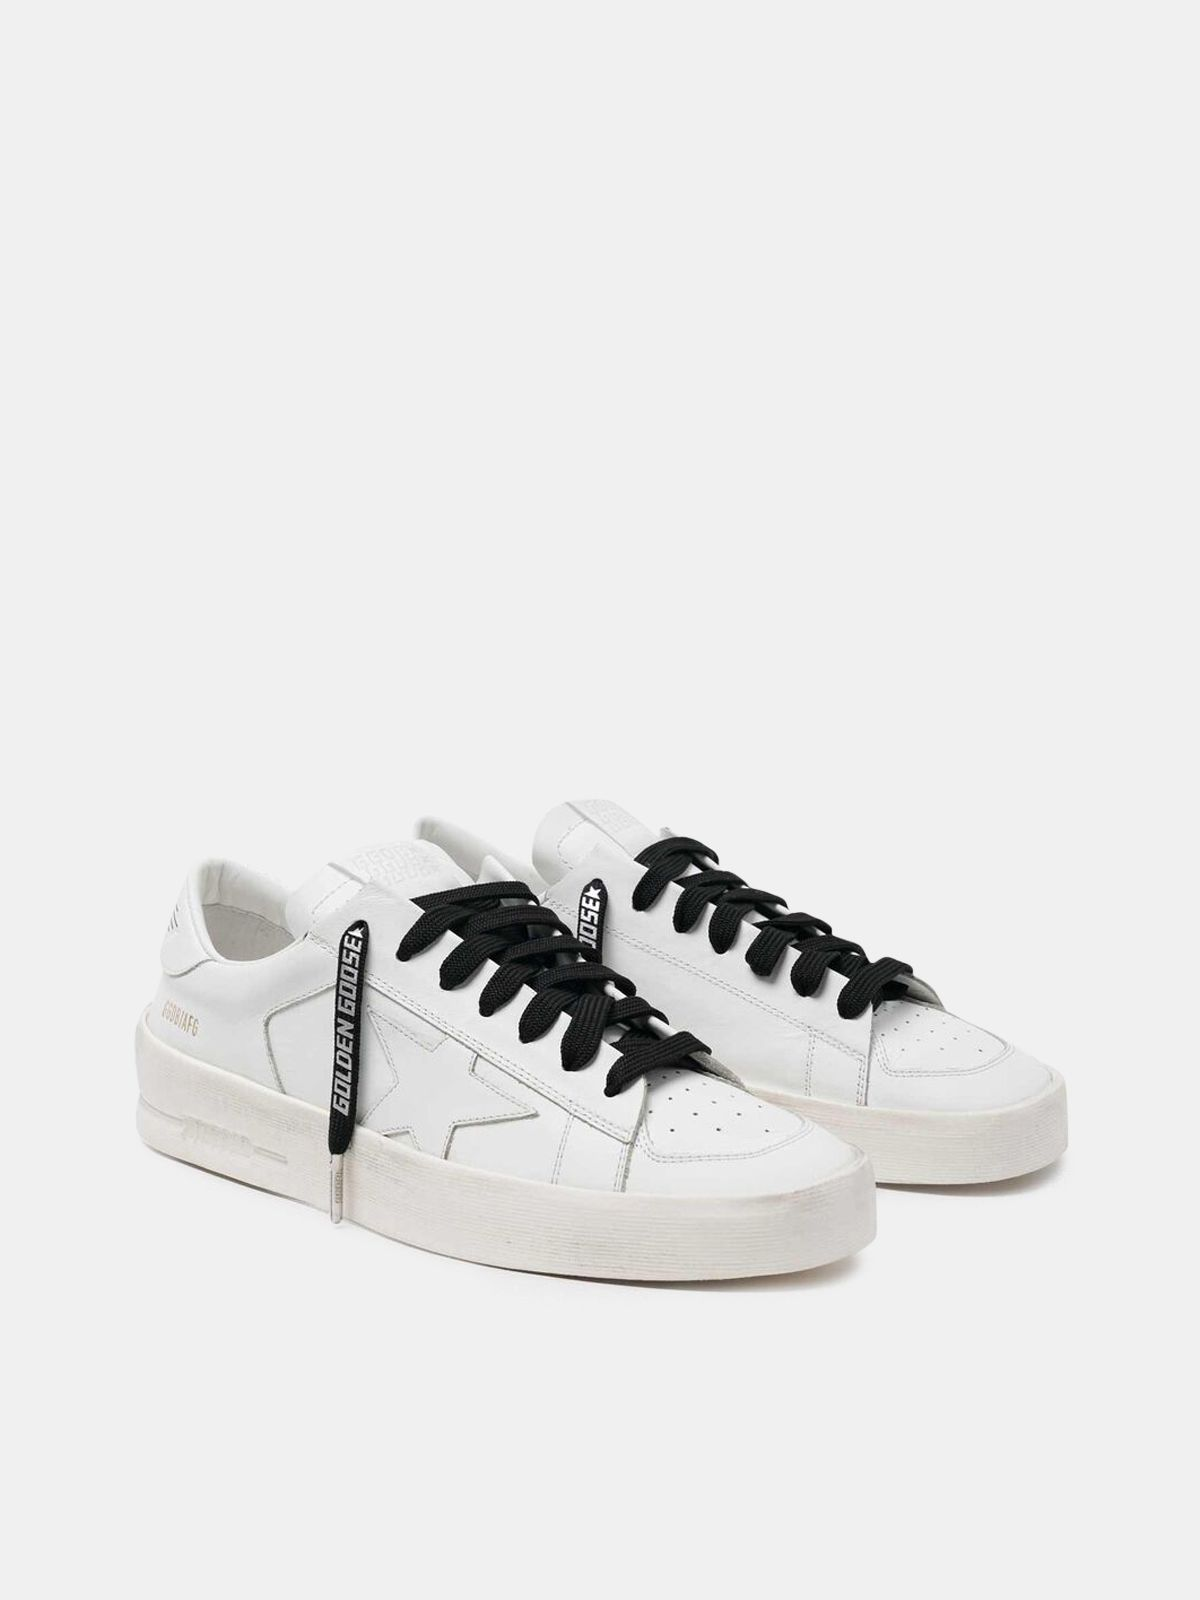 Golden Goose - Men's black laces with reflective logo in